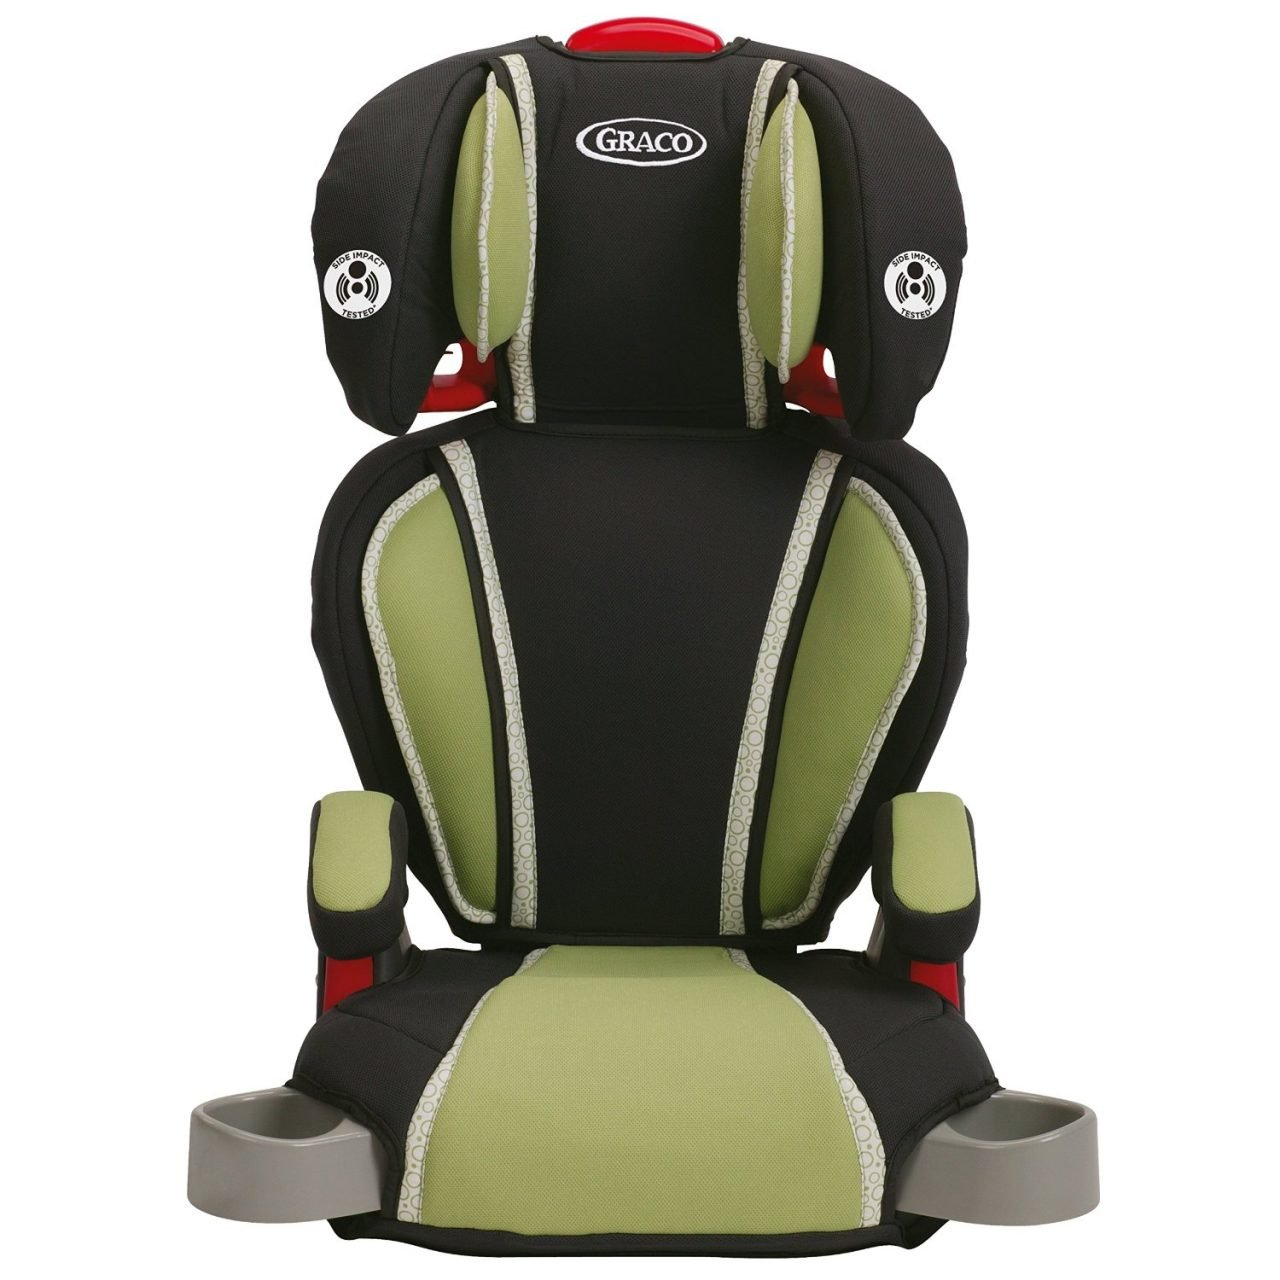 best booster seat a quick guide baby transports. Black Bedroom Furniture Sets. Home Design Ideas